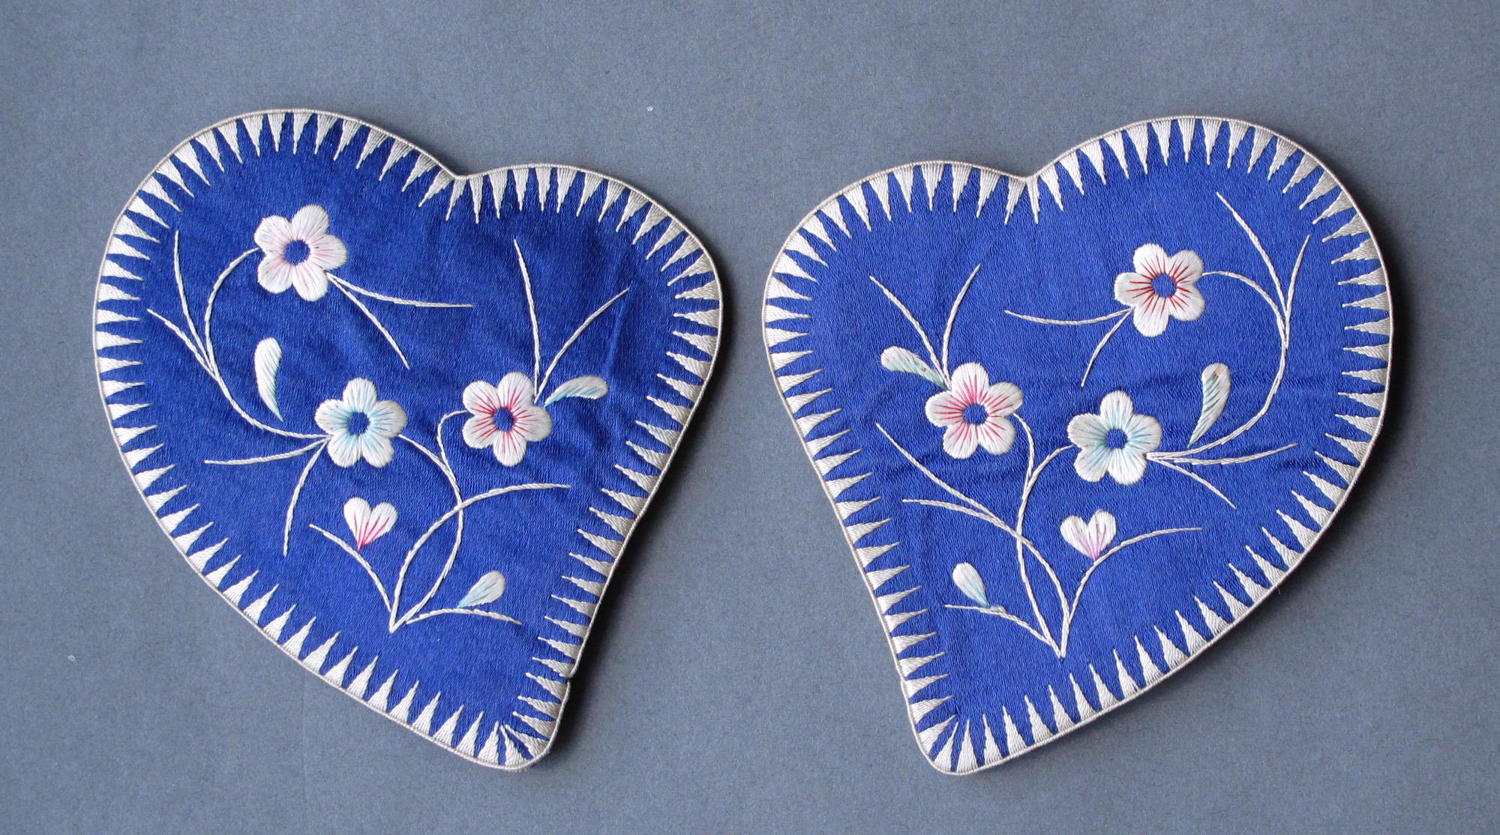 A pair of Chinese silk ear muffs with flower embroidery c1920